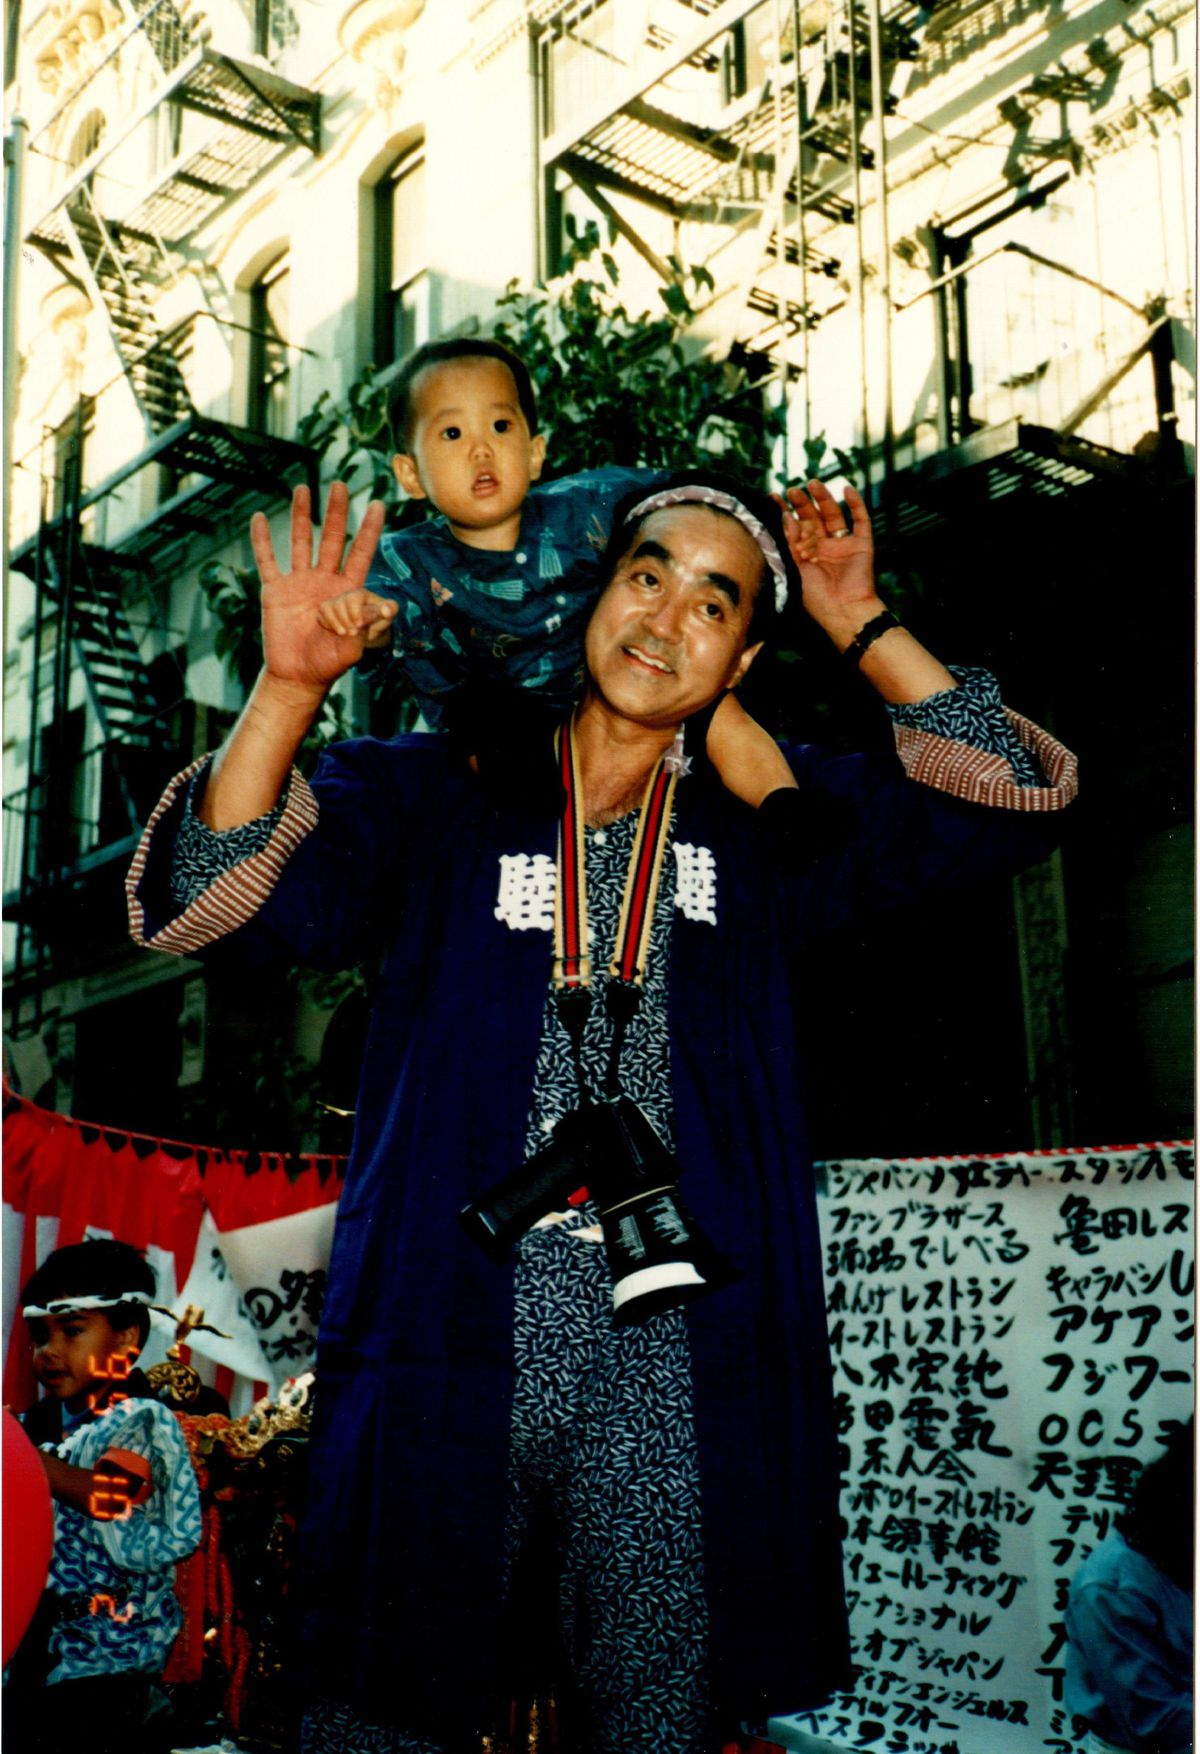 Bon Yagi has his arms up, with his baby son sitting on his shoulders.